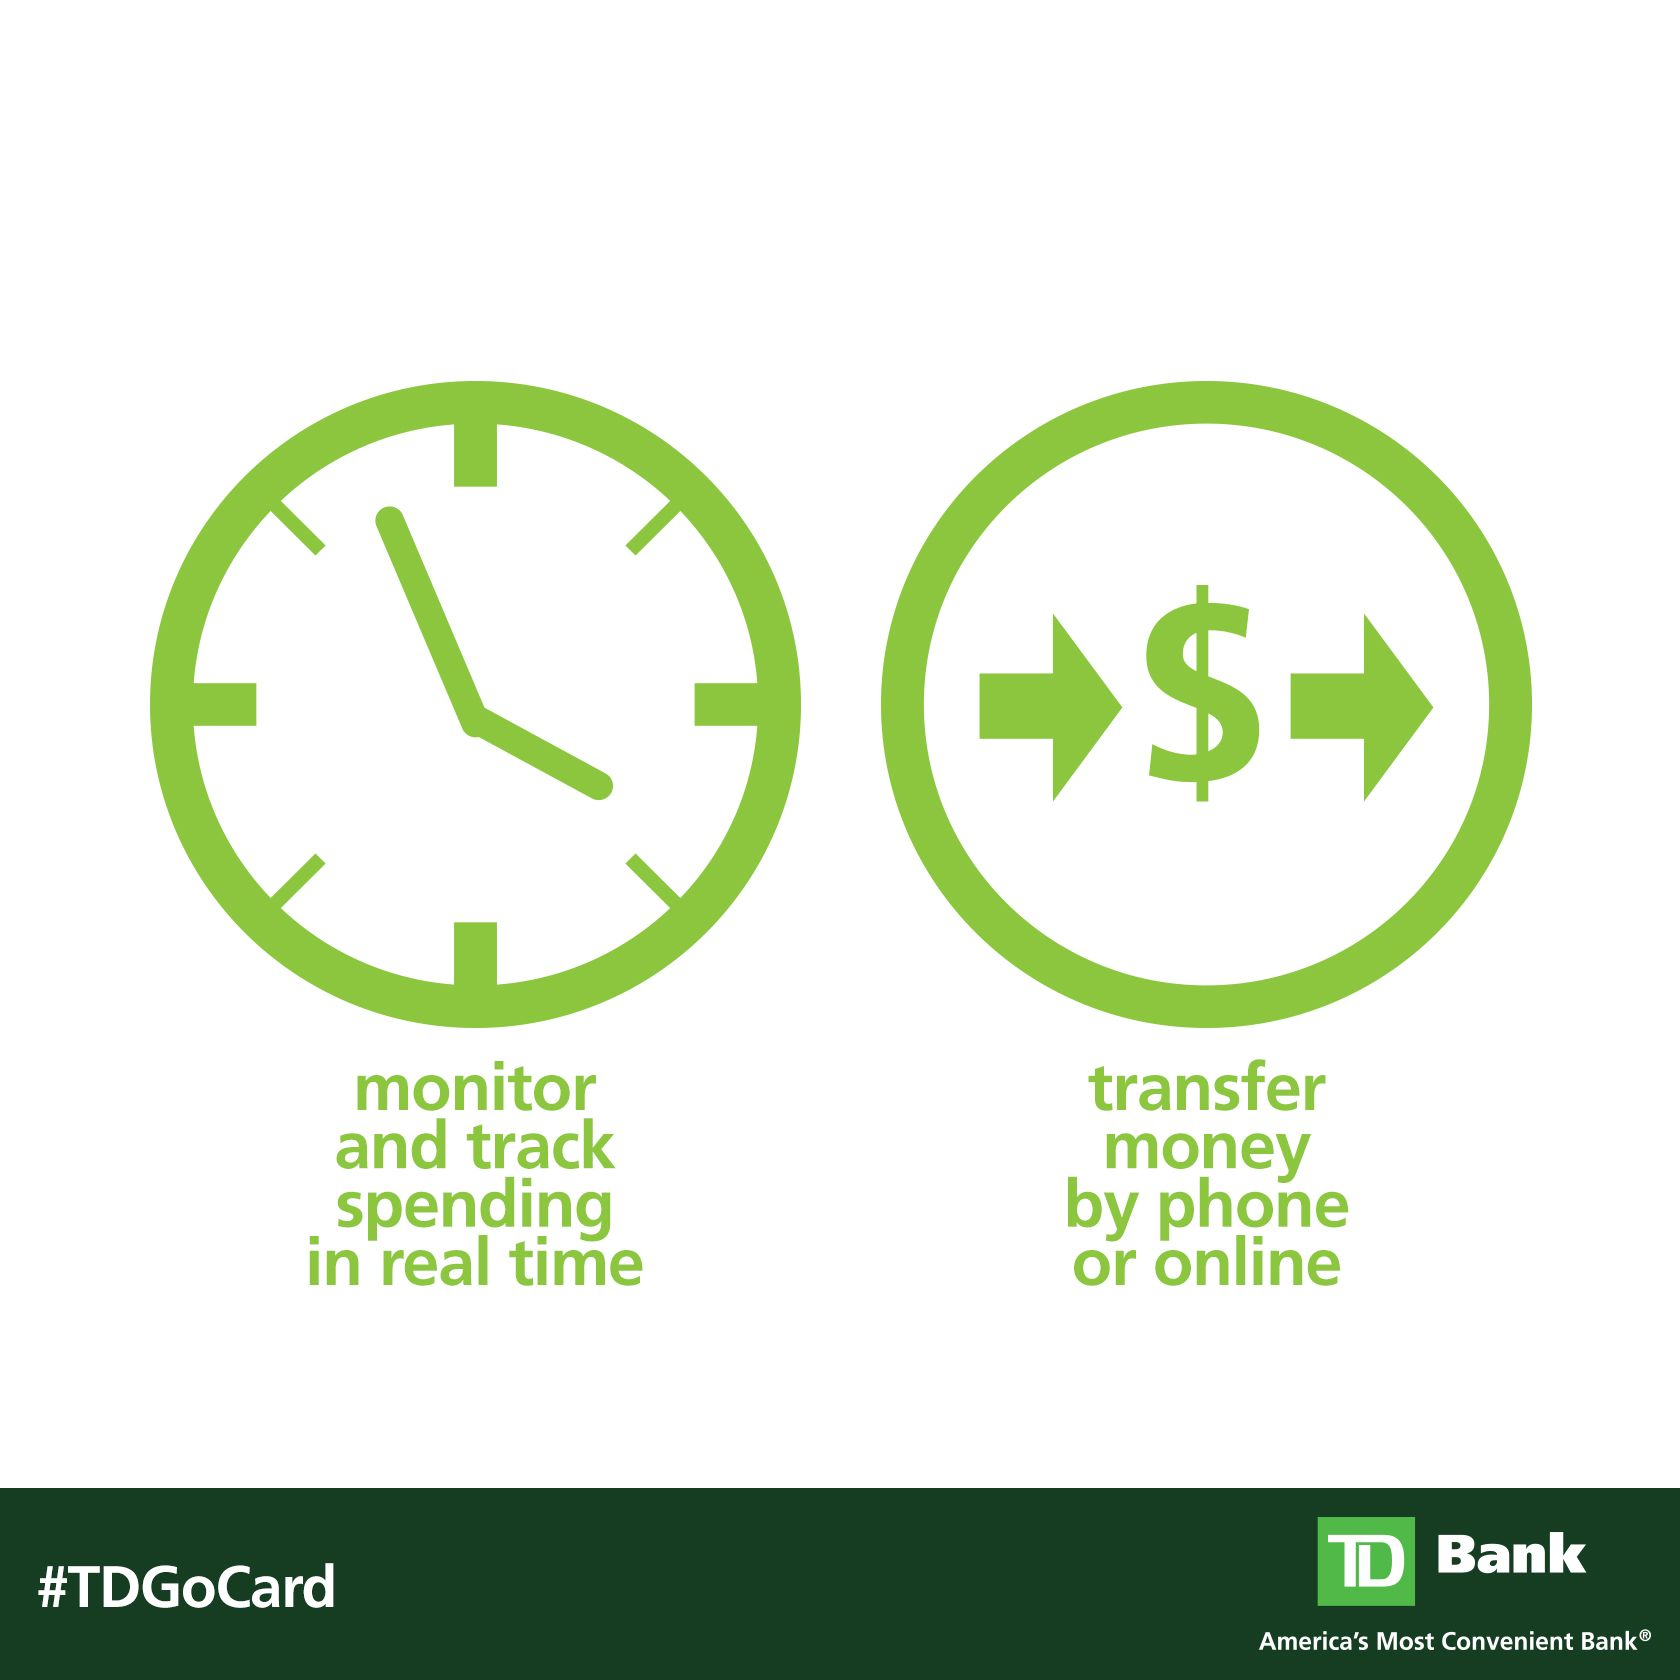 Give your teen freedom to spend responsibly with the TD Go Card